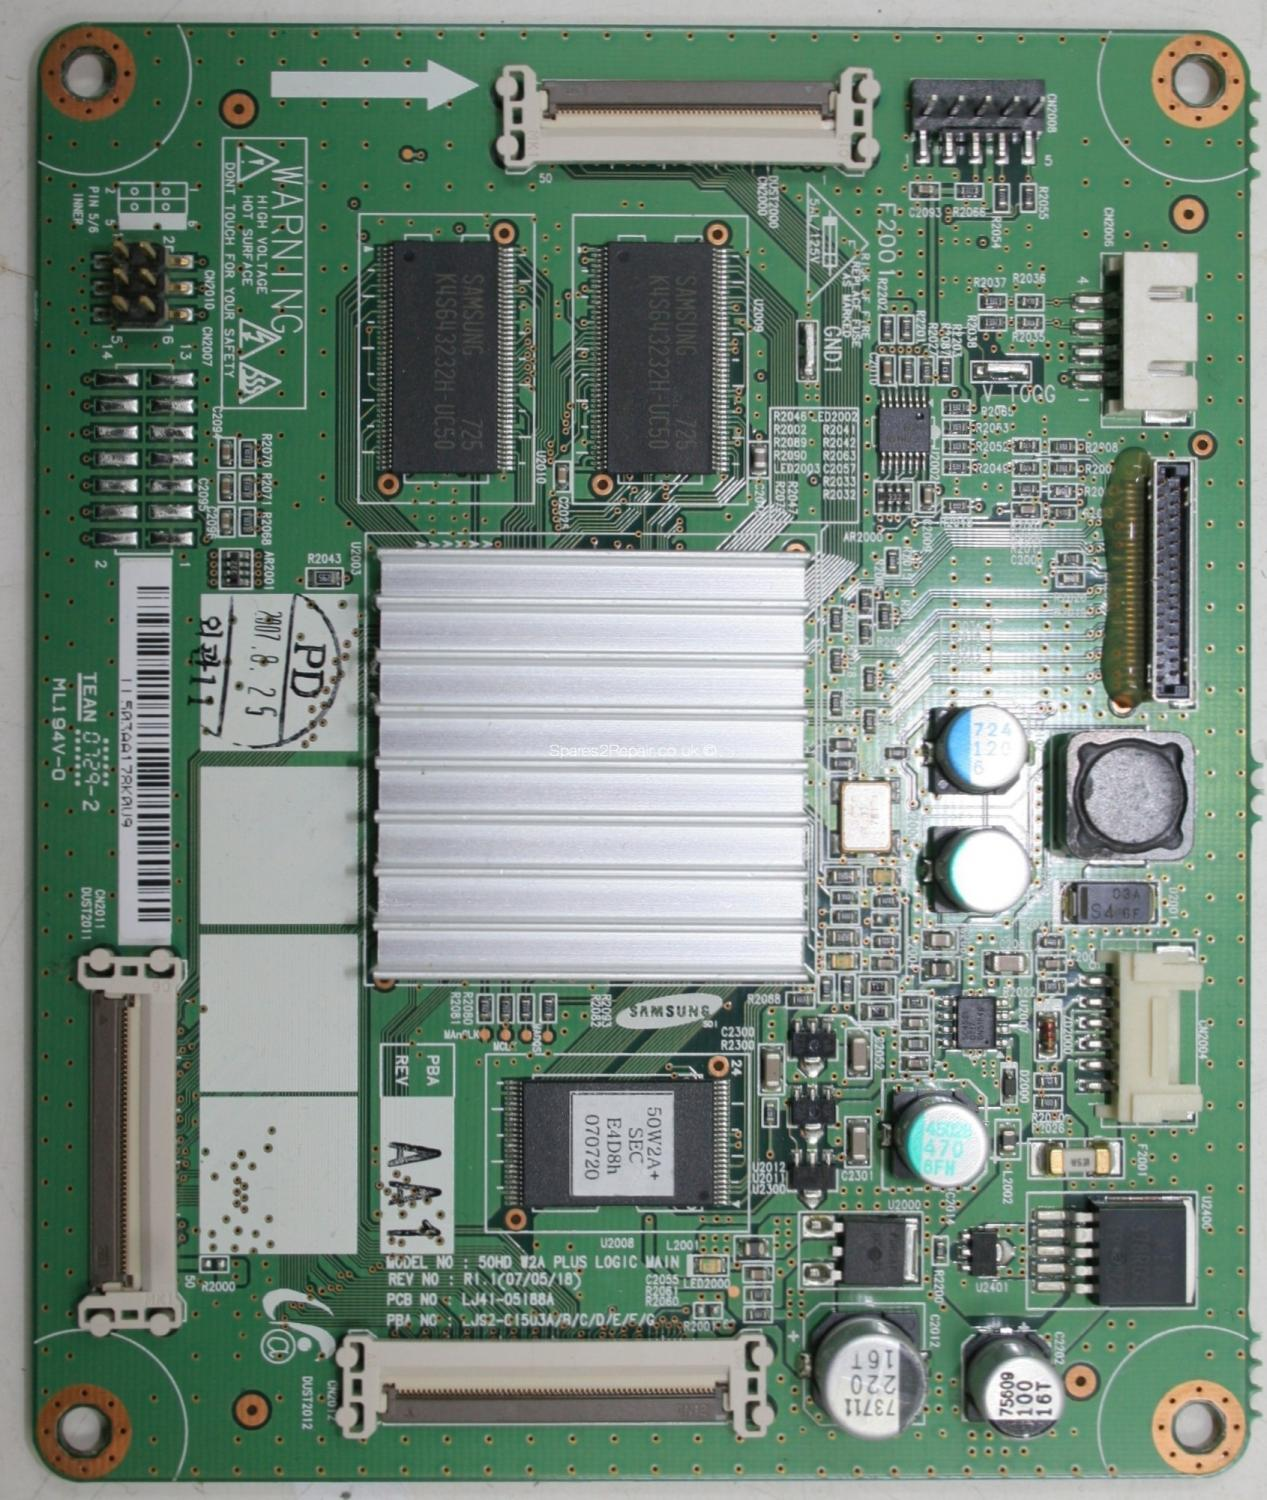 Samsung PS-50C96HD - LVDS - LJ41-05188A R1.1 - LJ92-01503A A1 - 50HD W2A PLUS LOGIC MAIN